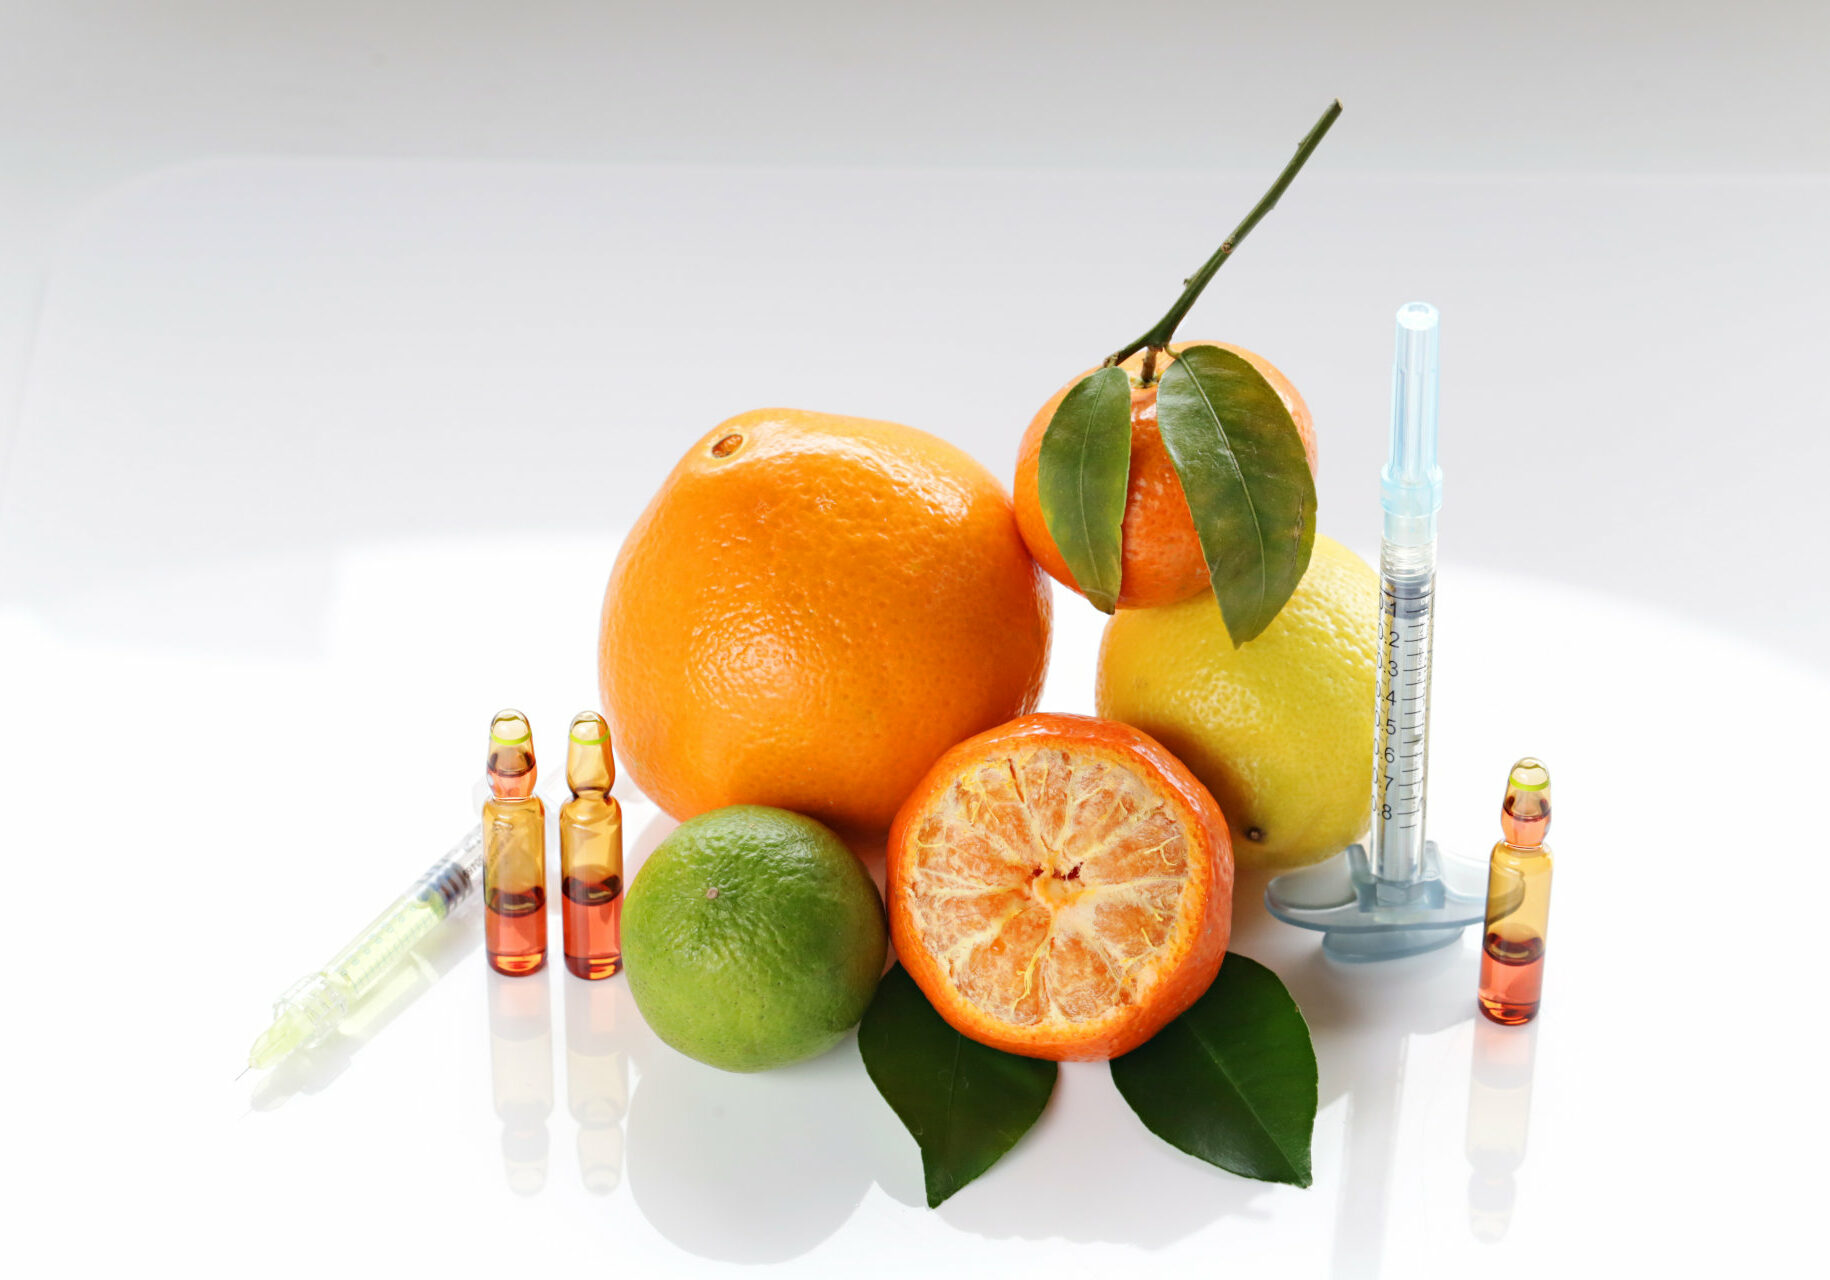 Vitamin C in ampoules, two syringes, mandarin, lemon,  orange and lime on a light background.  Cosmetics Concept